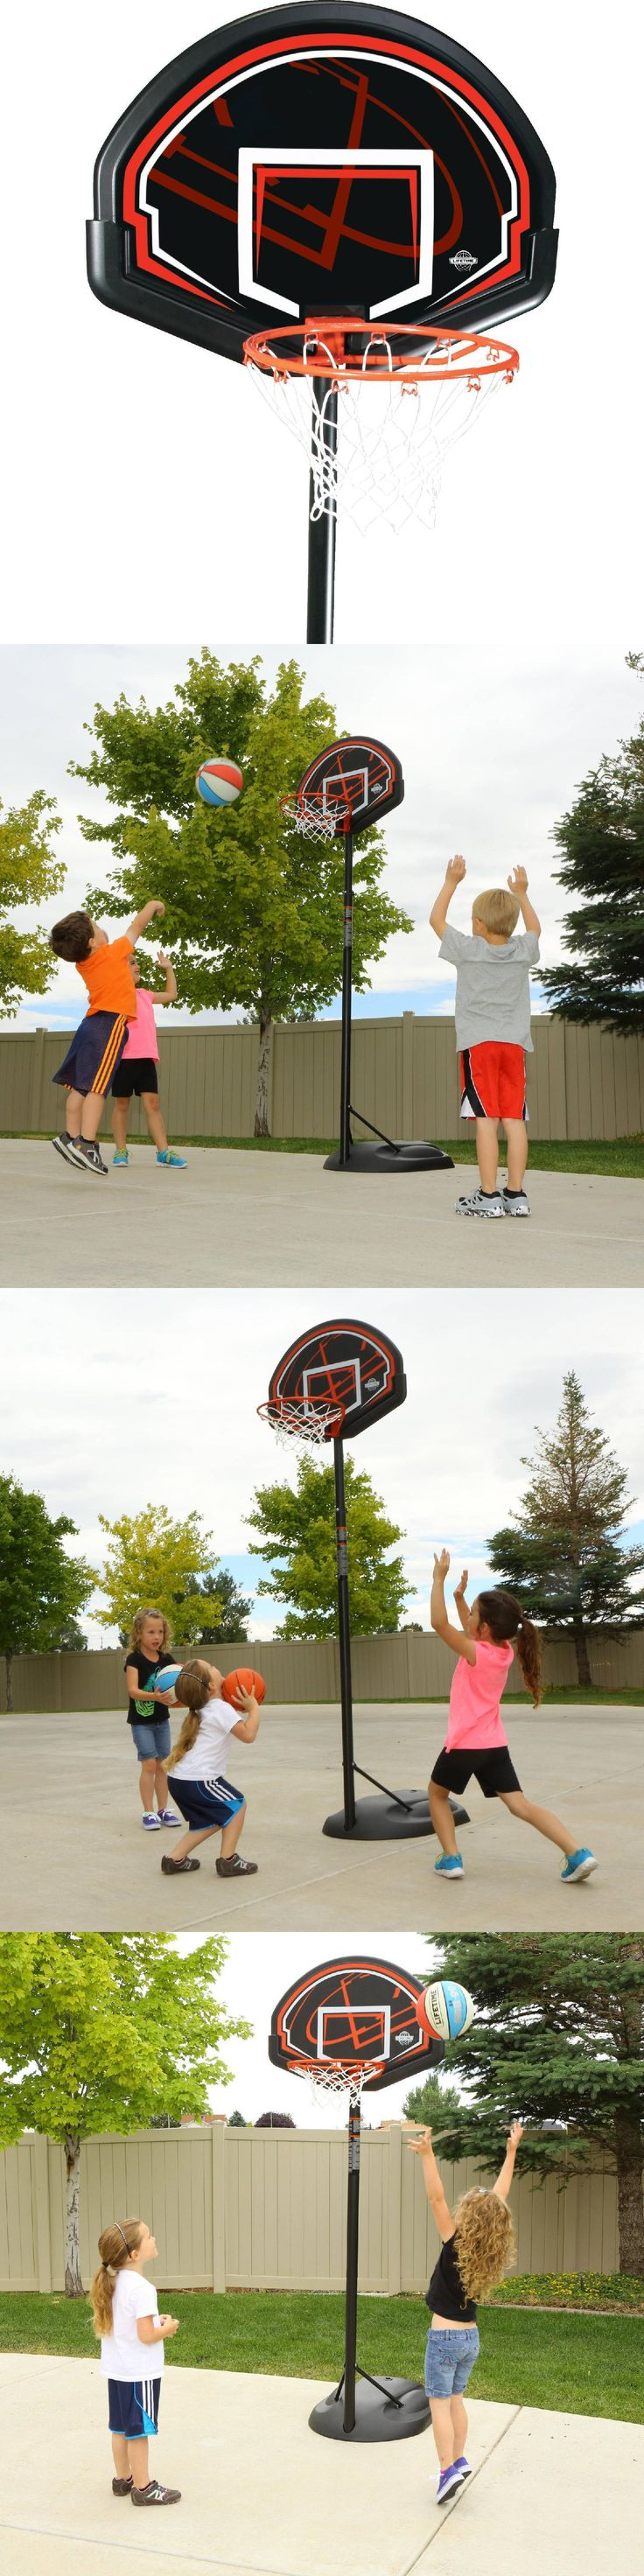 Backboard Systems 21196: Portable Basketball System Adjustable Height Indoor Outdoor Hoop BUY IT NOW ONLY: $74.94